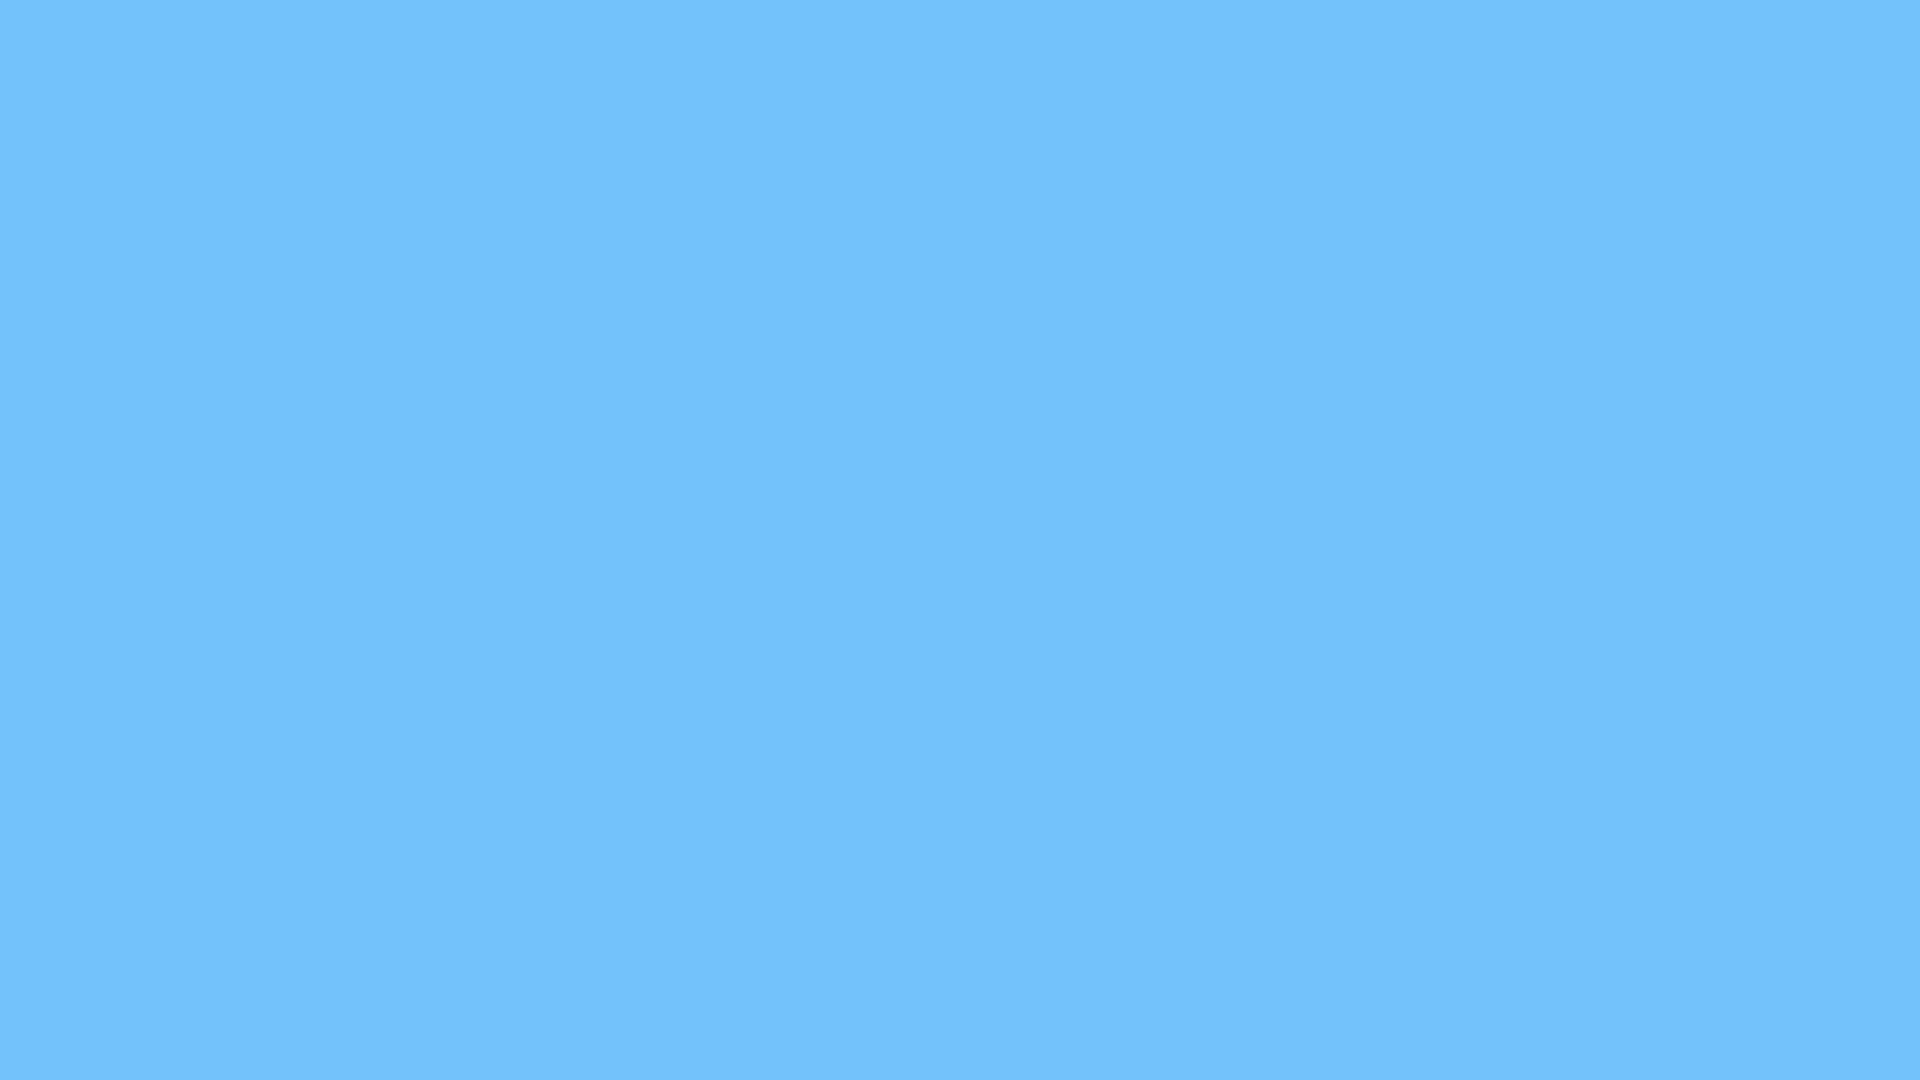 1920x1080 Maya Blue Solid Color Background